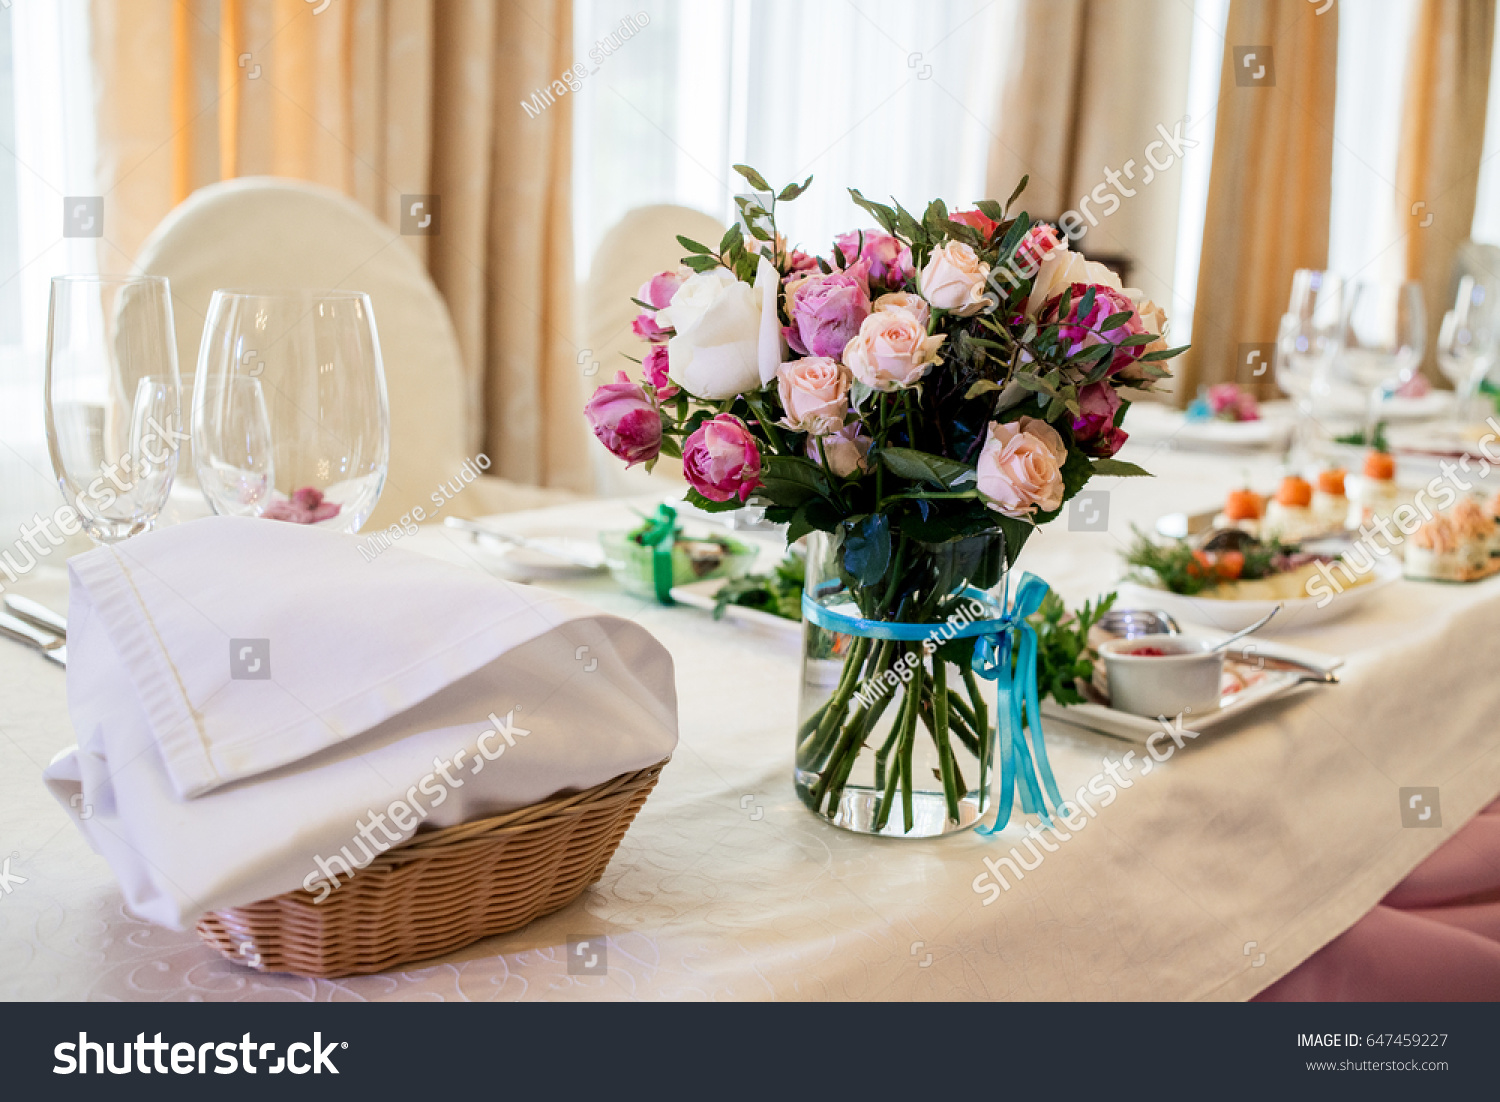 Beautiful Wedding Bouquet Of Cream And Pink Roses In Glass Vase On